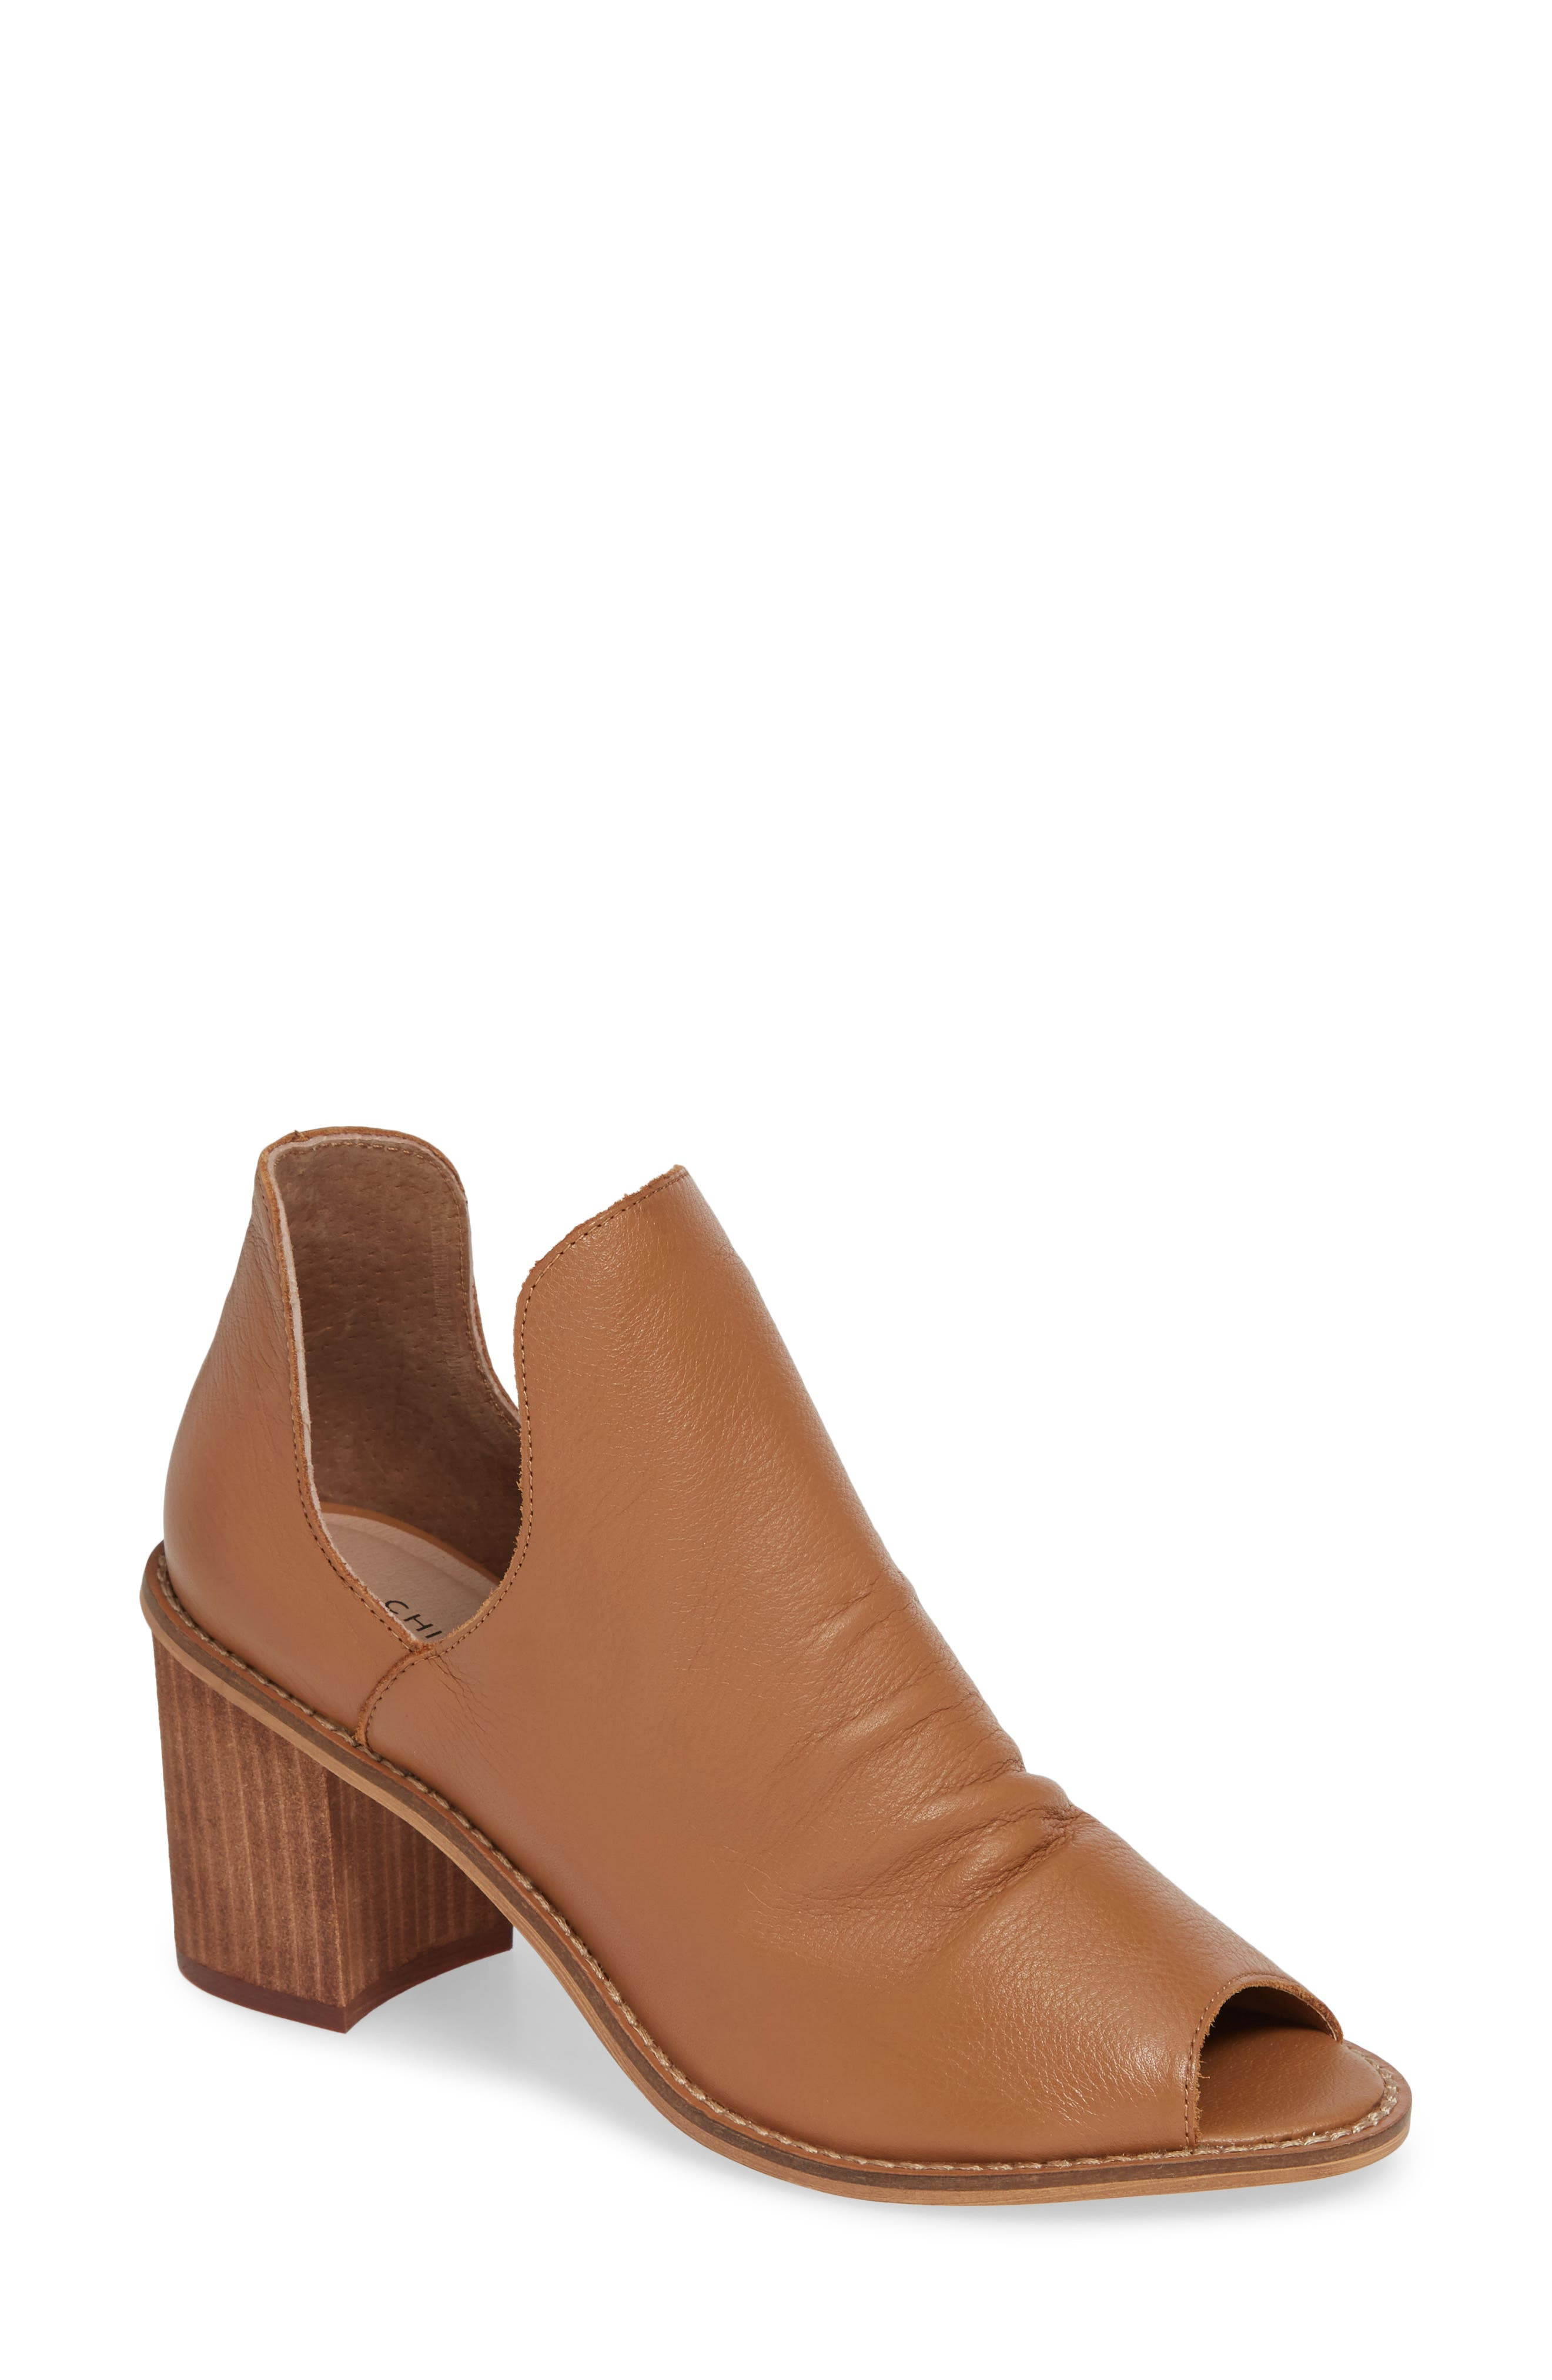 Chinese Laundry Carlita Peep Toe Bootie, Brown